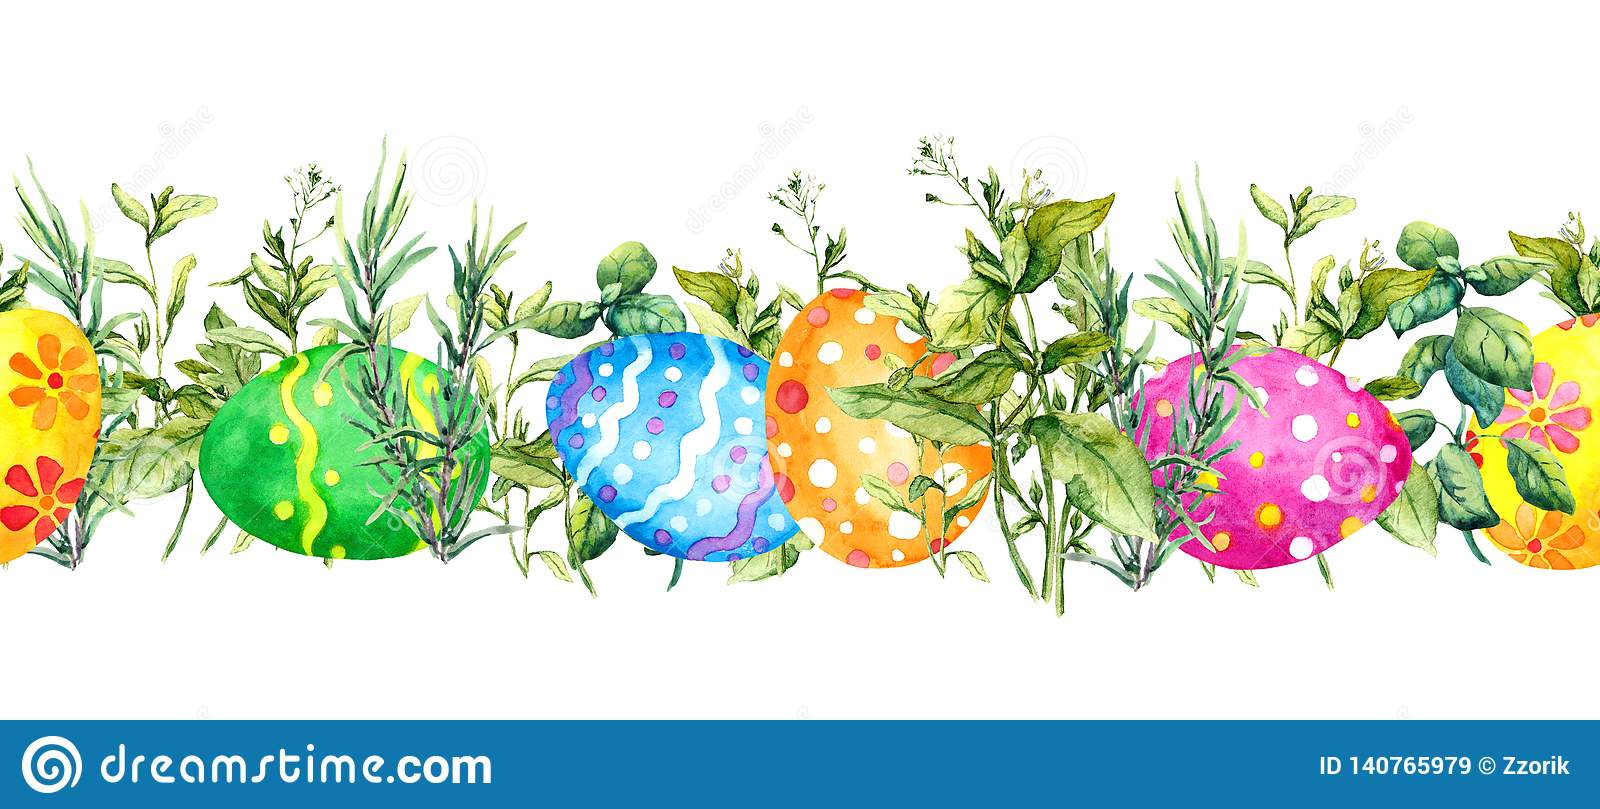 Decorated Colored Easter Eggs Hidden In Spring Green Grass